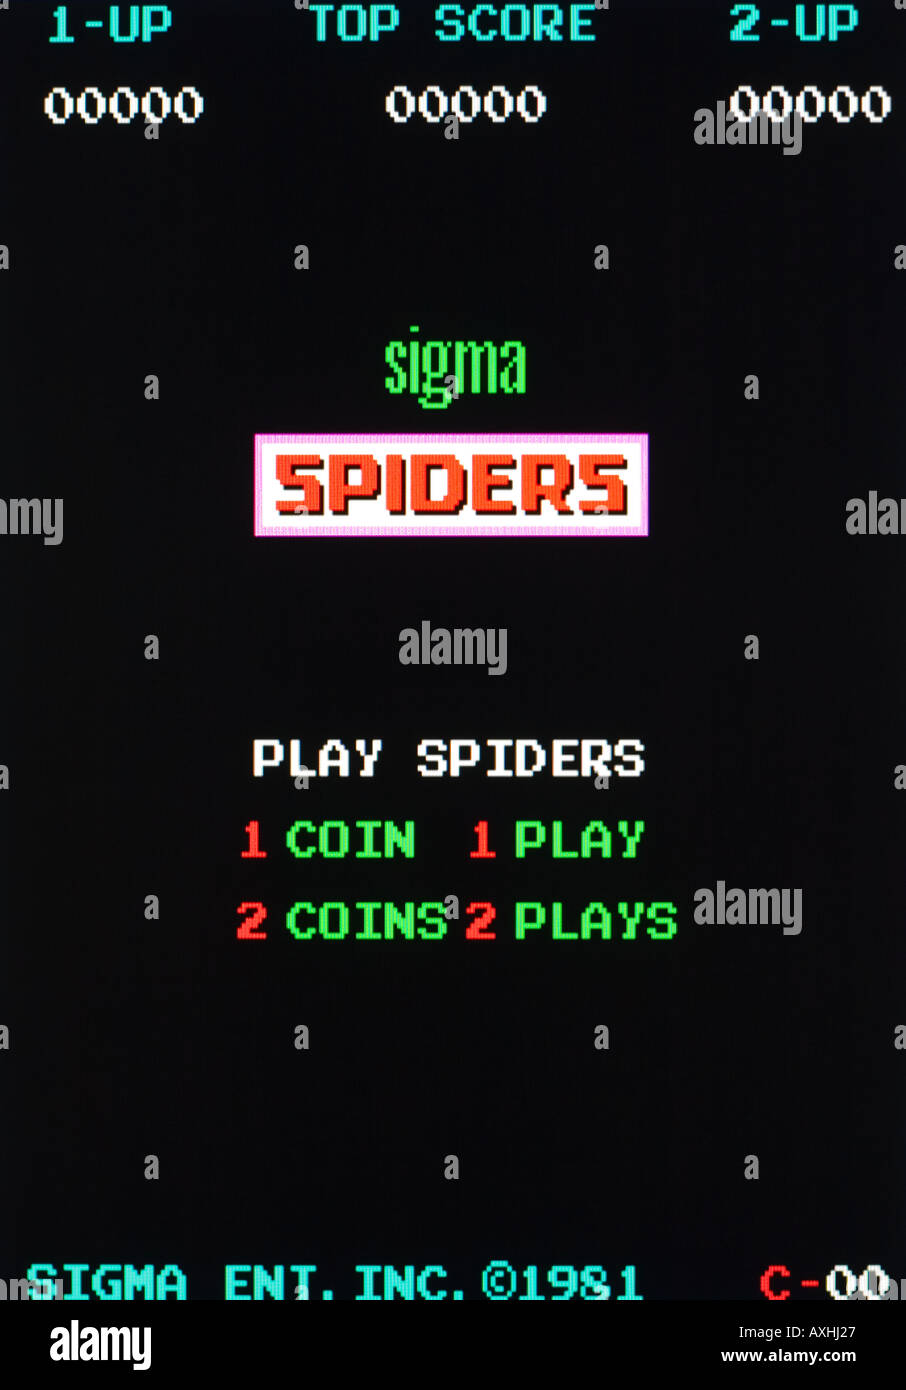 Spiders Sigman Ent Inc 1981 Vintage arcade videogame screen shot - EDITORIAL USE ONLY - Stock Image